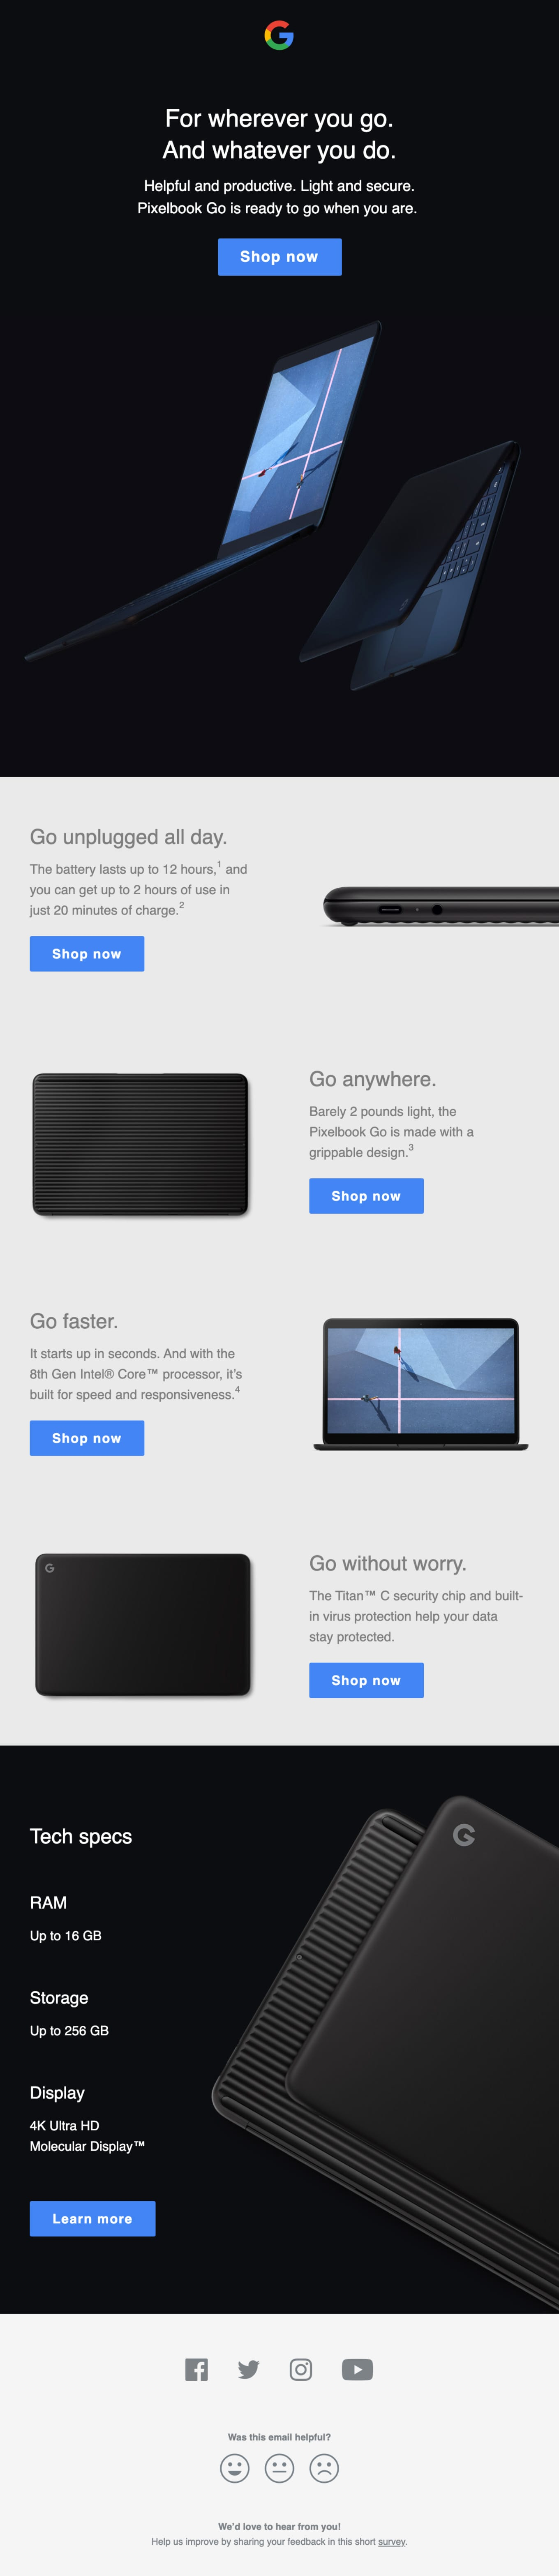 Introducing the new Pixelbook Go Email Screenshot